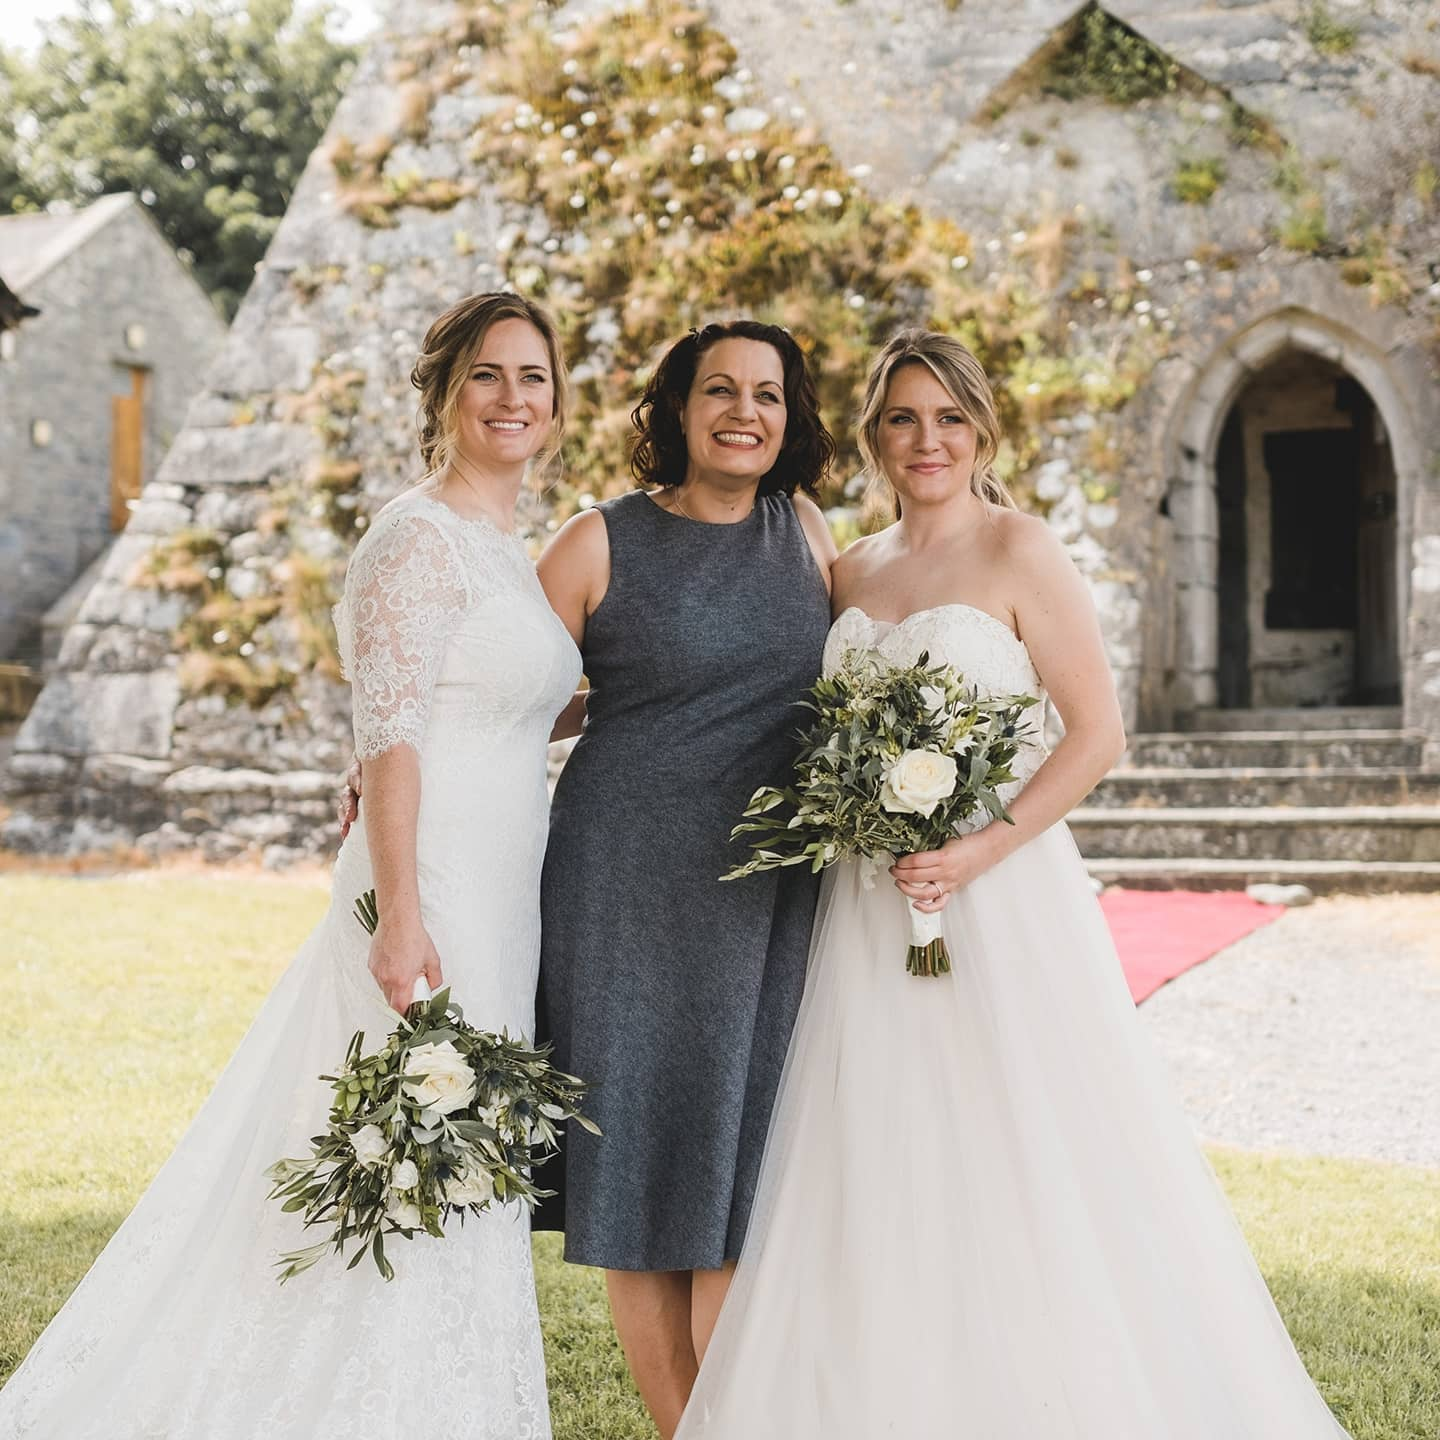 Wedding Celebrant Ireland